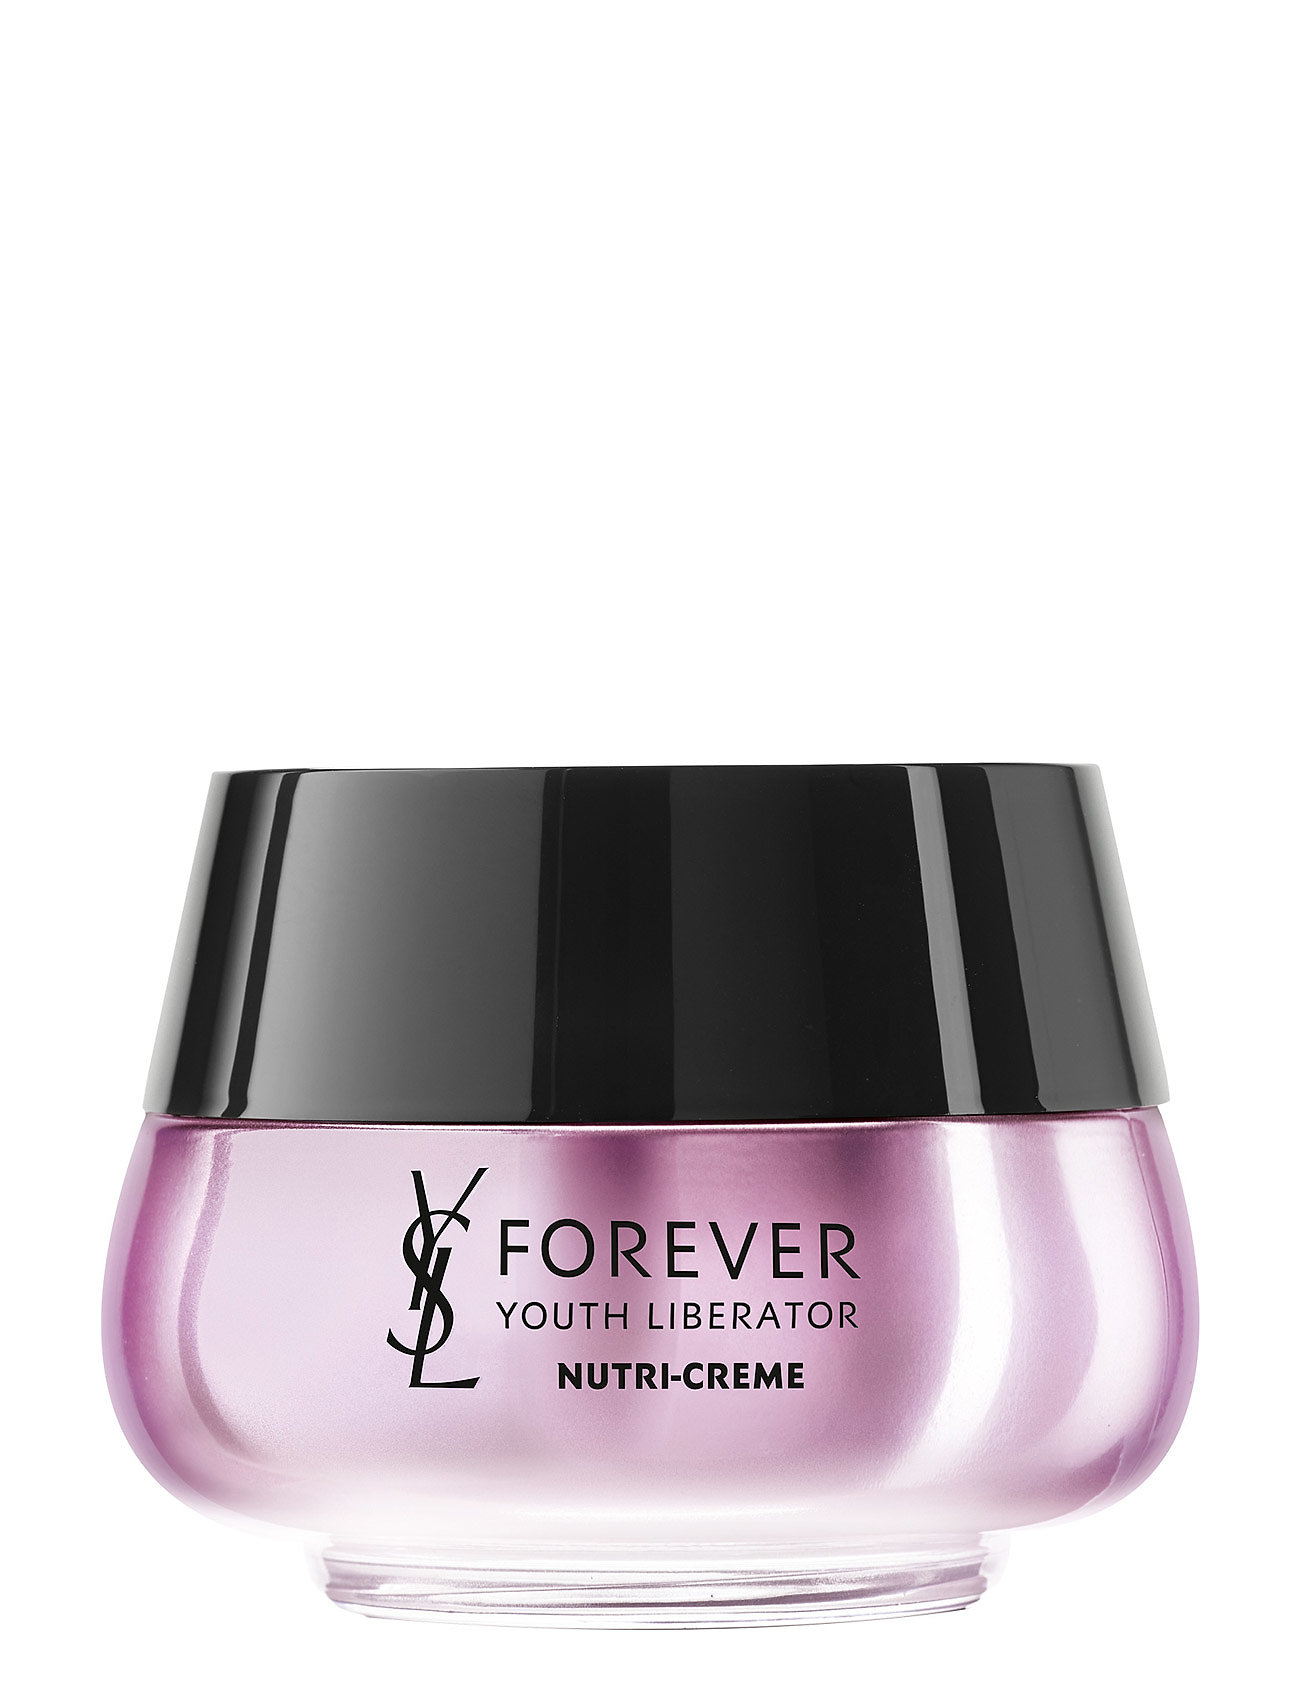 yves saint laurent Forever youth liberator cream dry skin 50 ml. på boozt.com dk